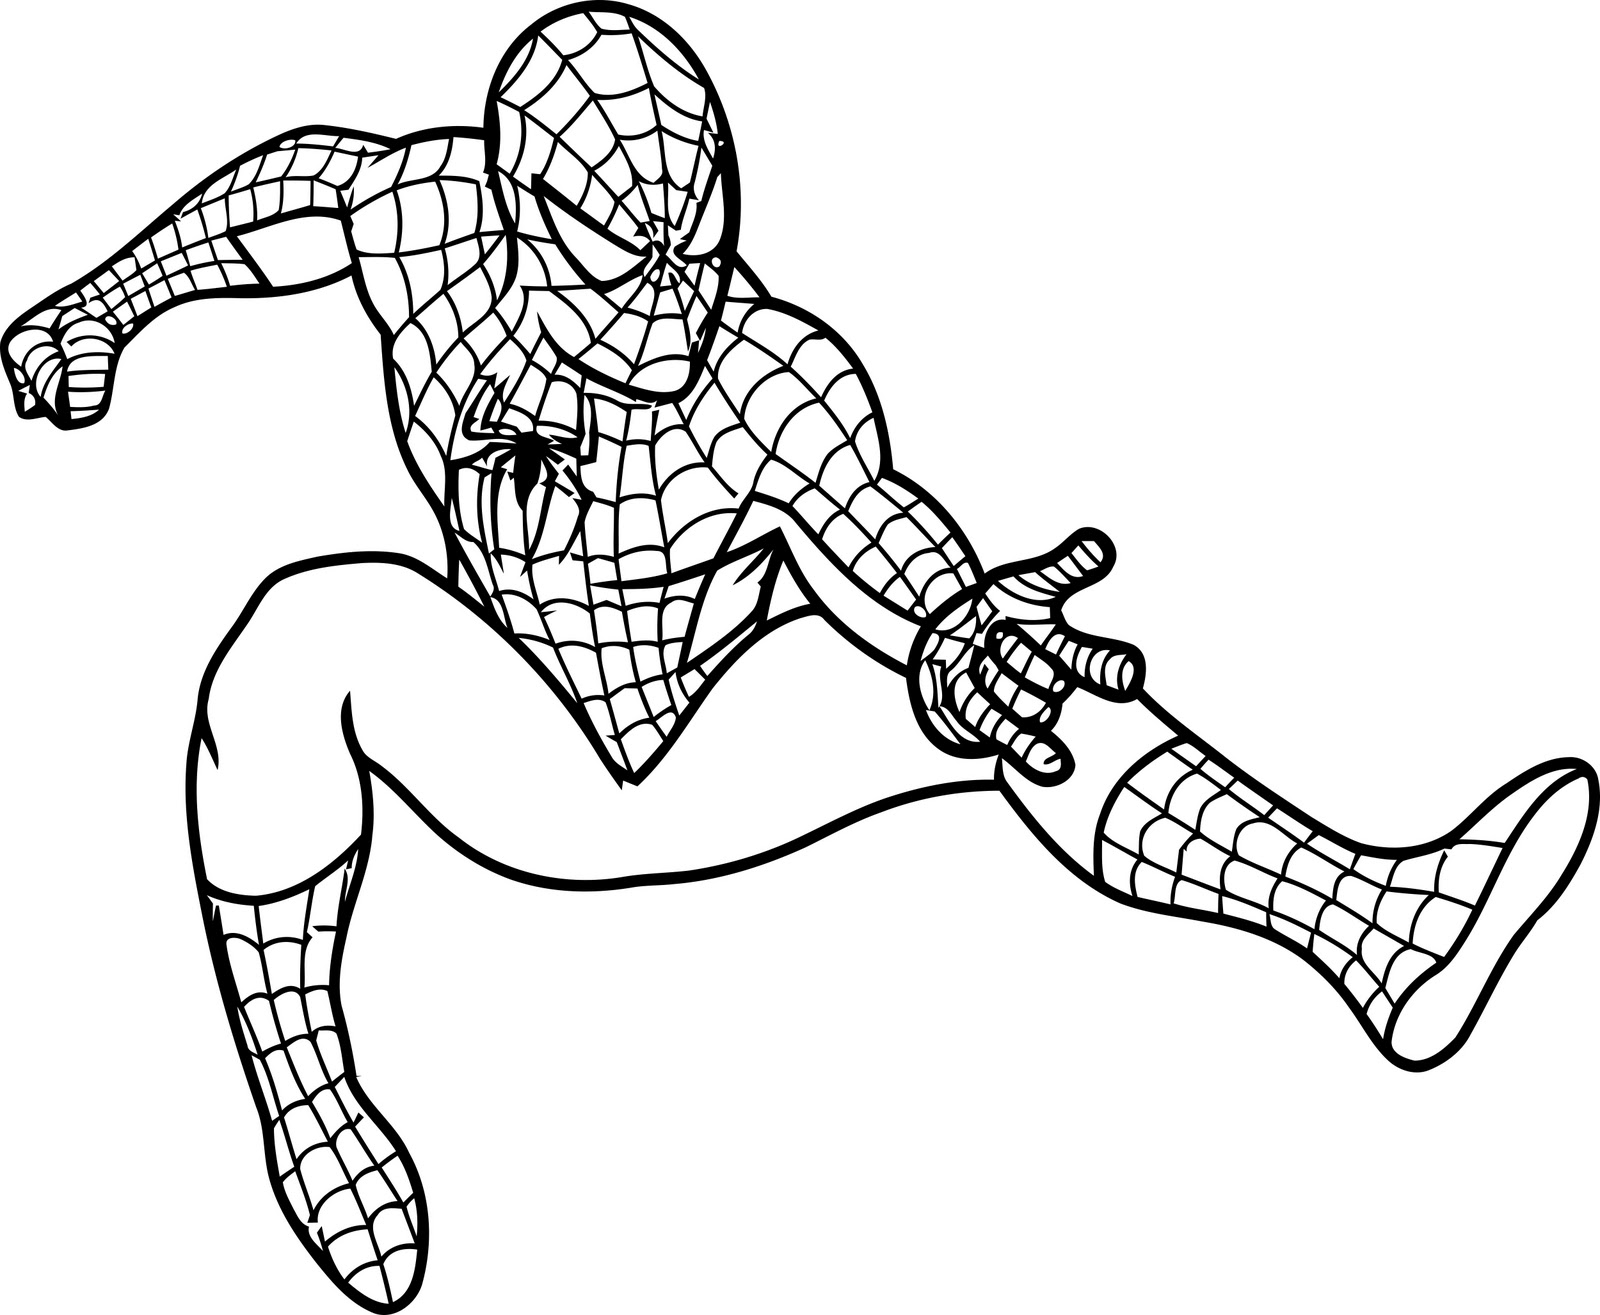 7 Images of Free Printable Spider-Man Coloring Pages